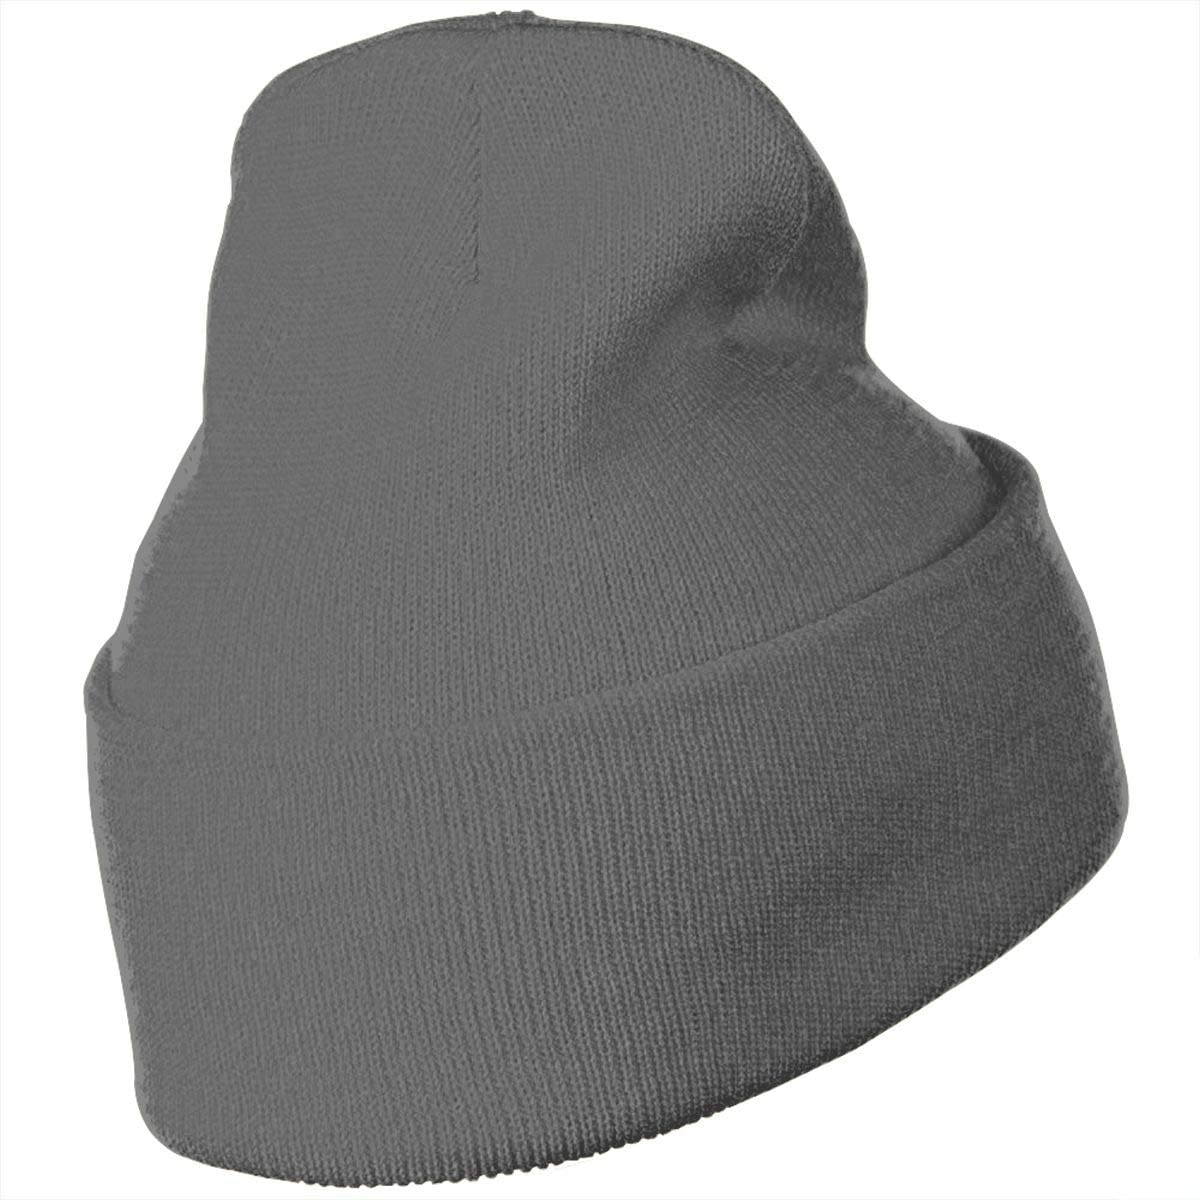 JimHappy Moonnight Hat for Men and Women Winter Warm Hats Knit Slouchy Thick Skull Cap Black